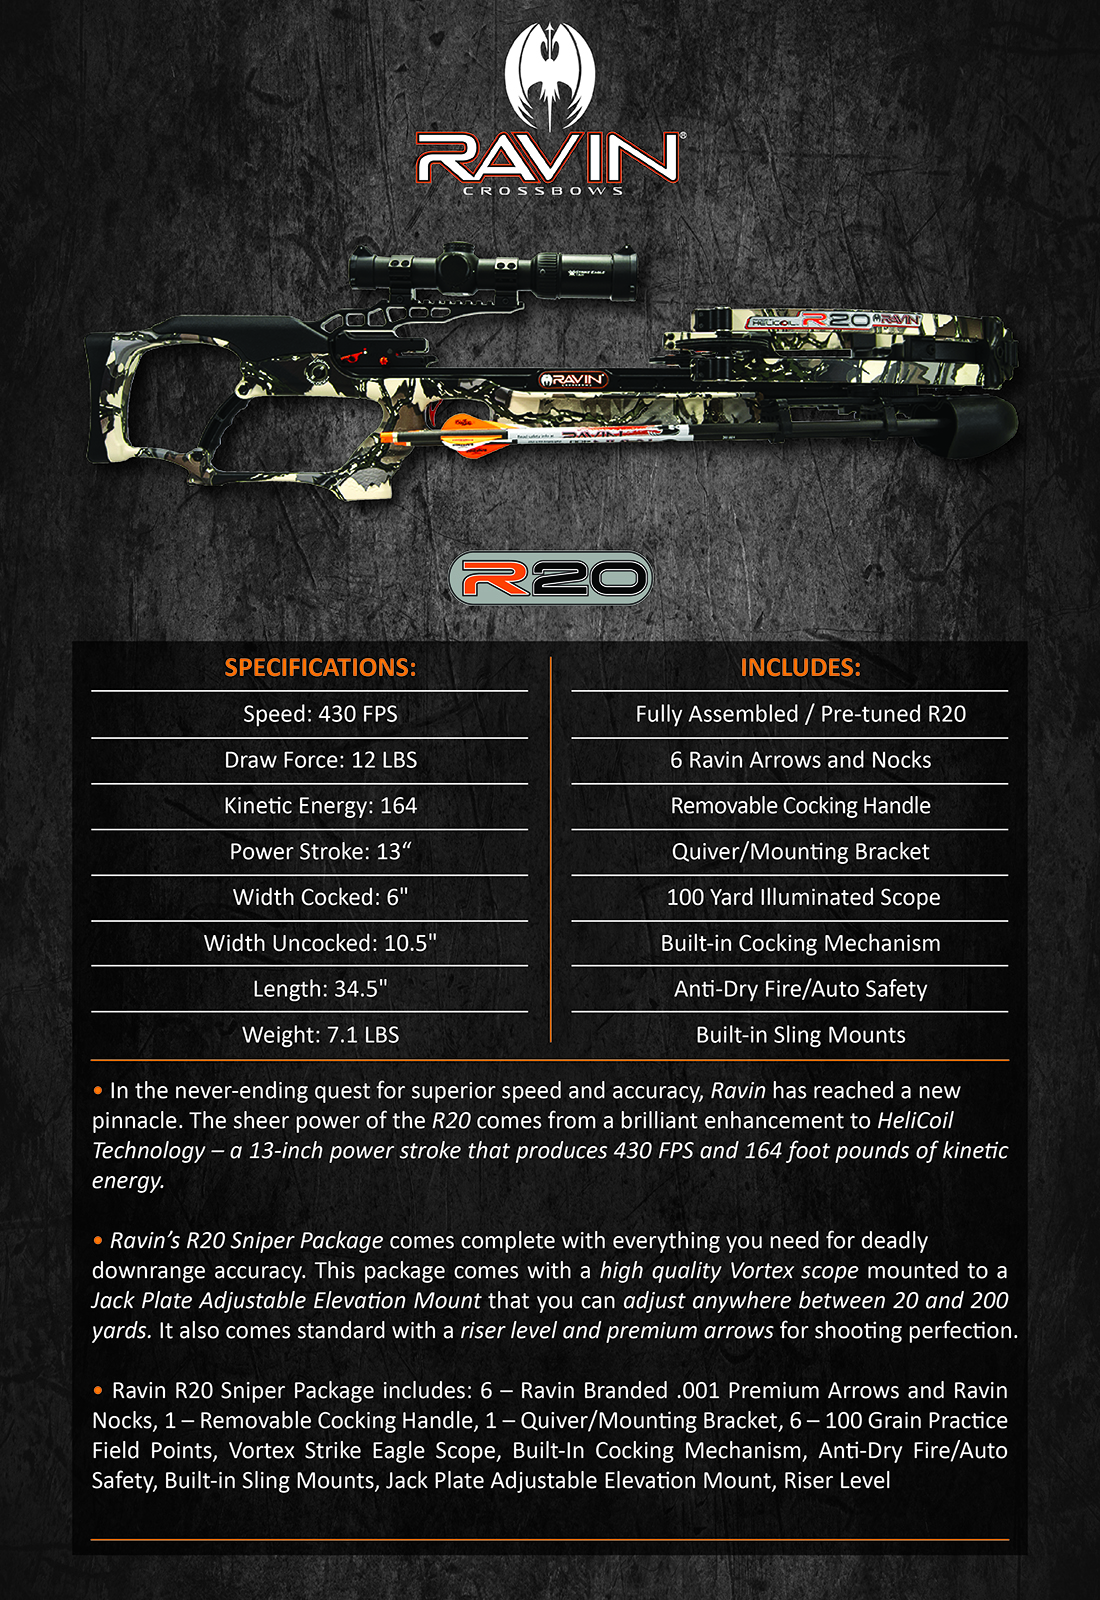 Ravin_Crossbow_R20_Camo_Product_Description